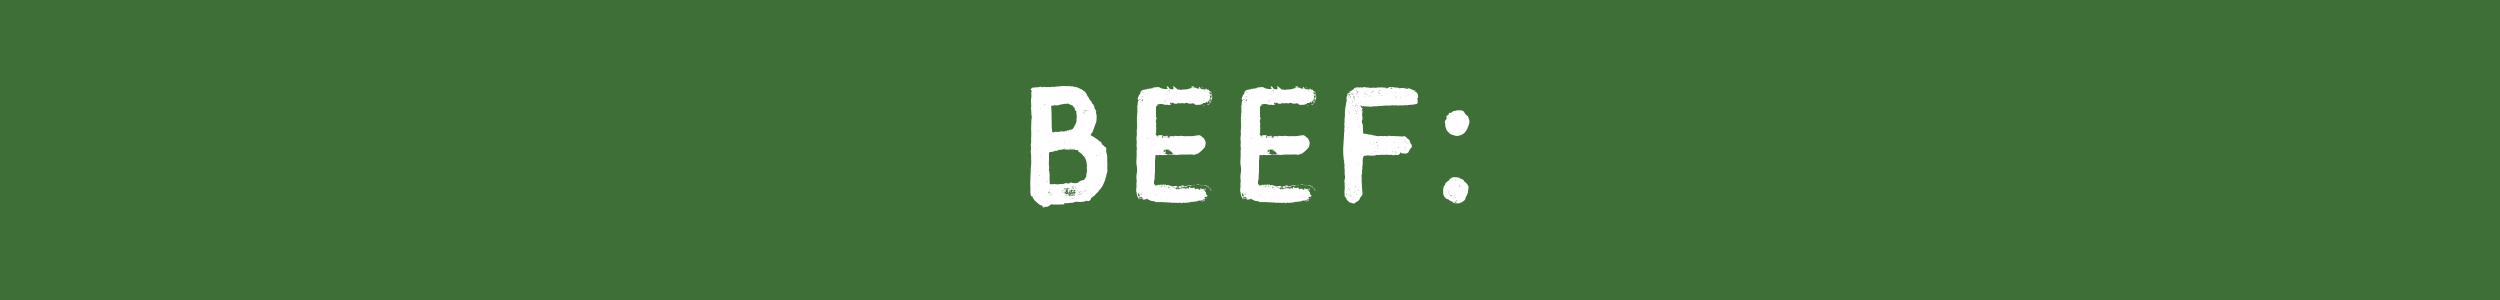 Beef.png